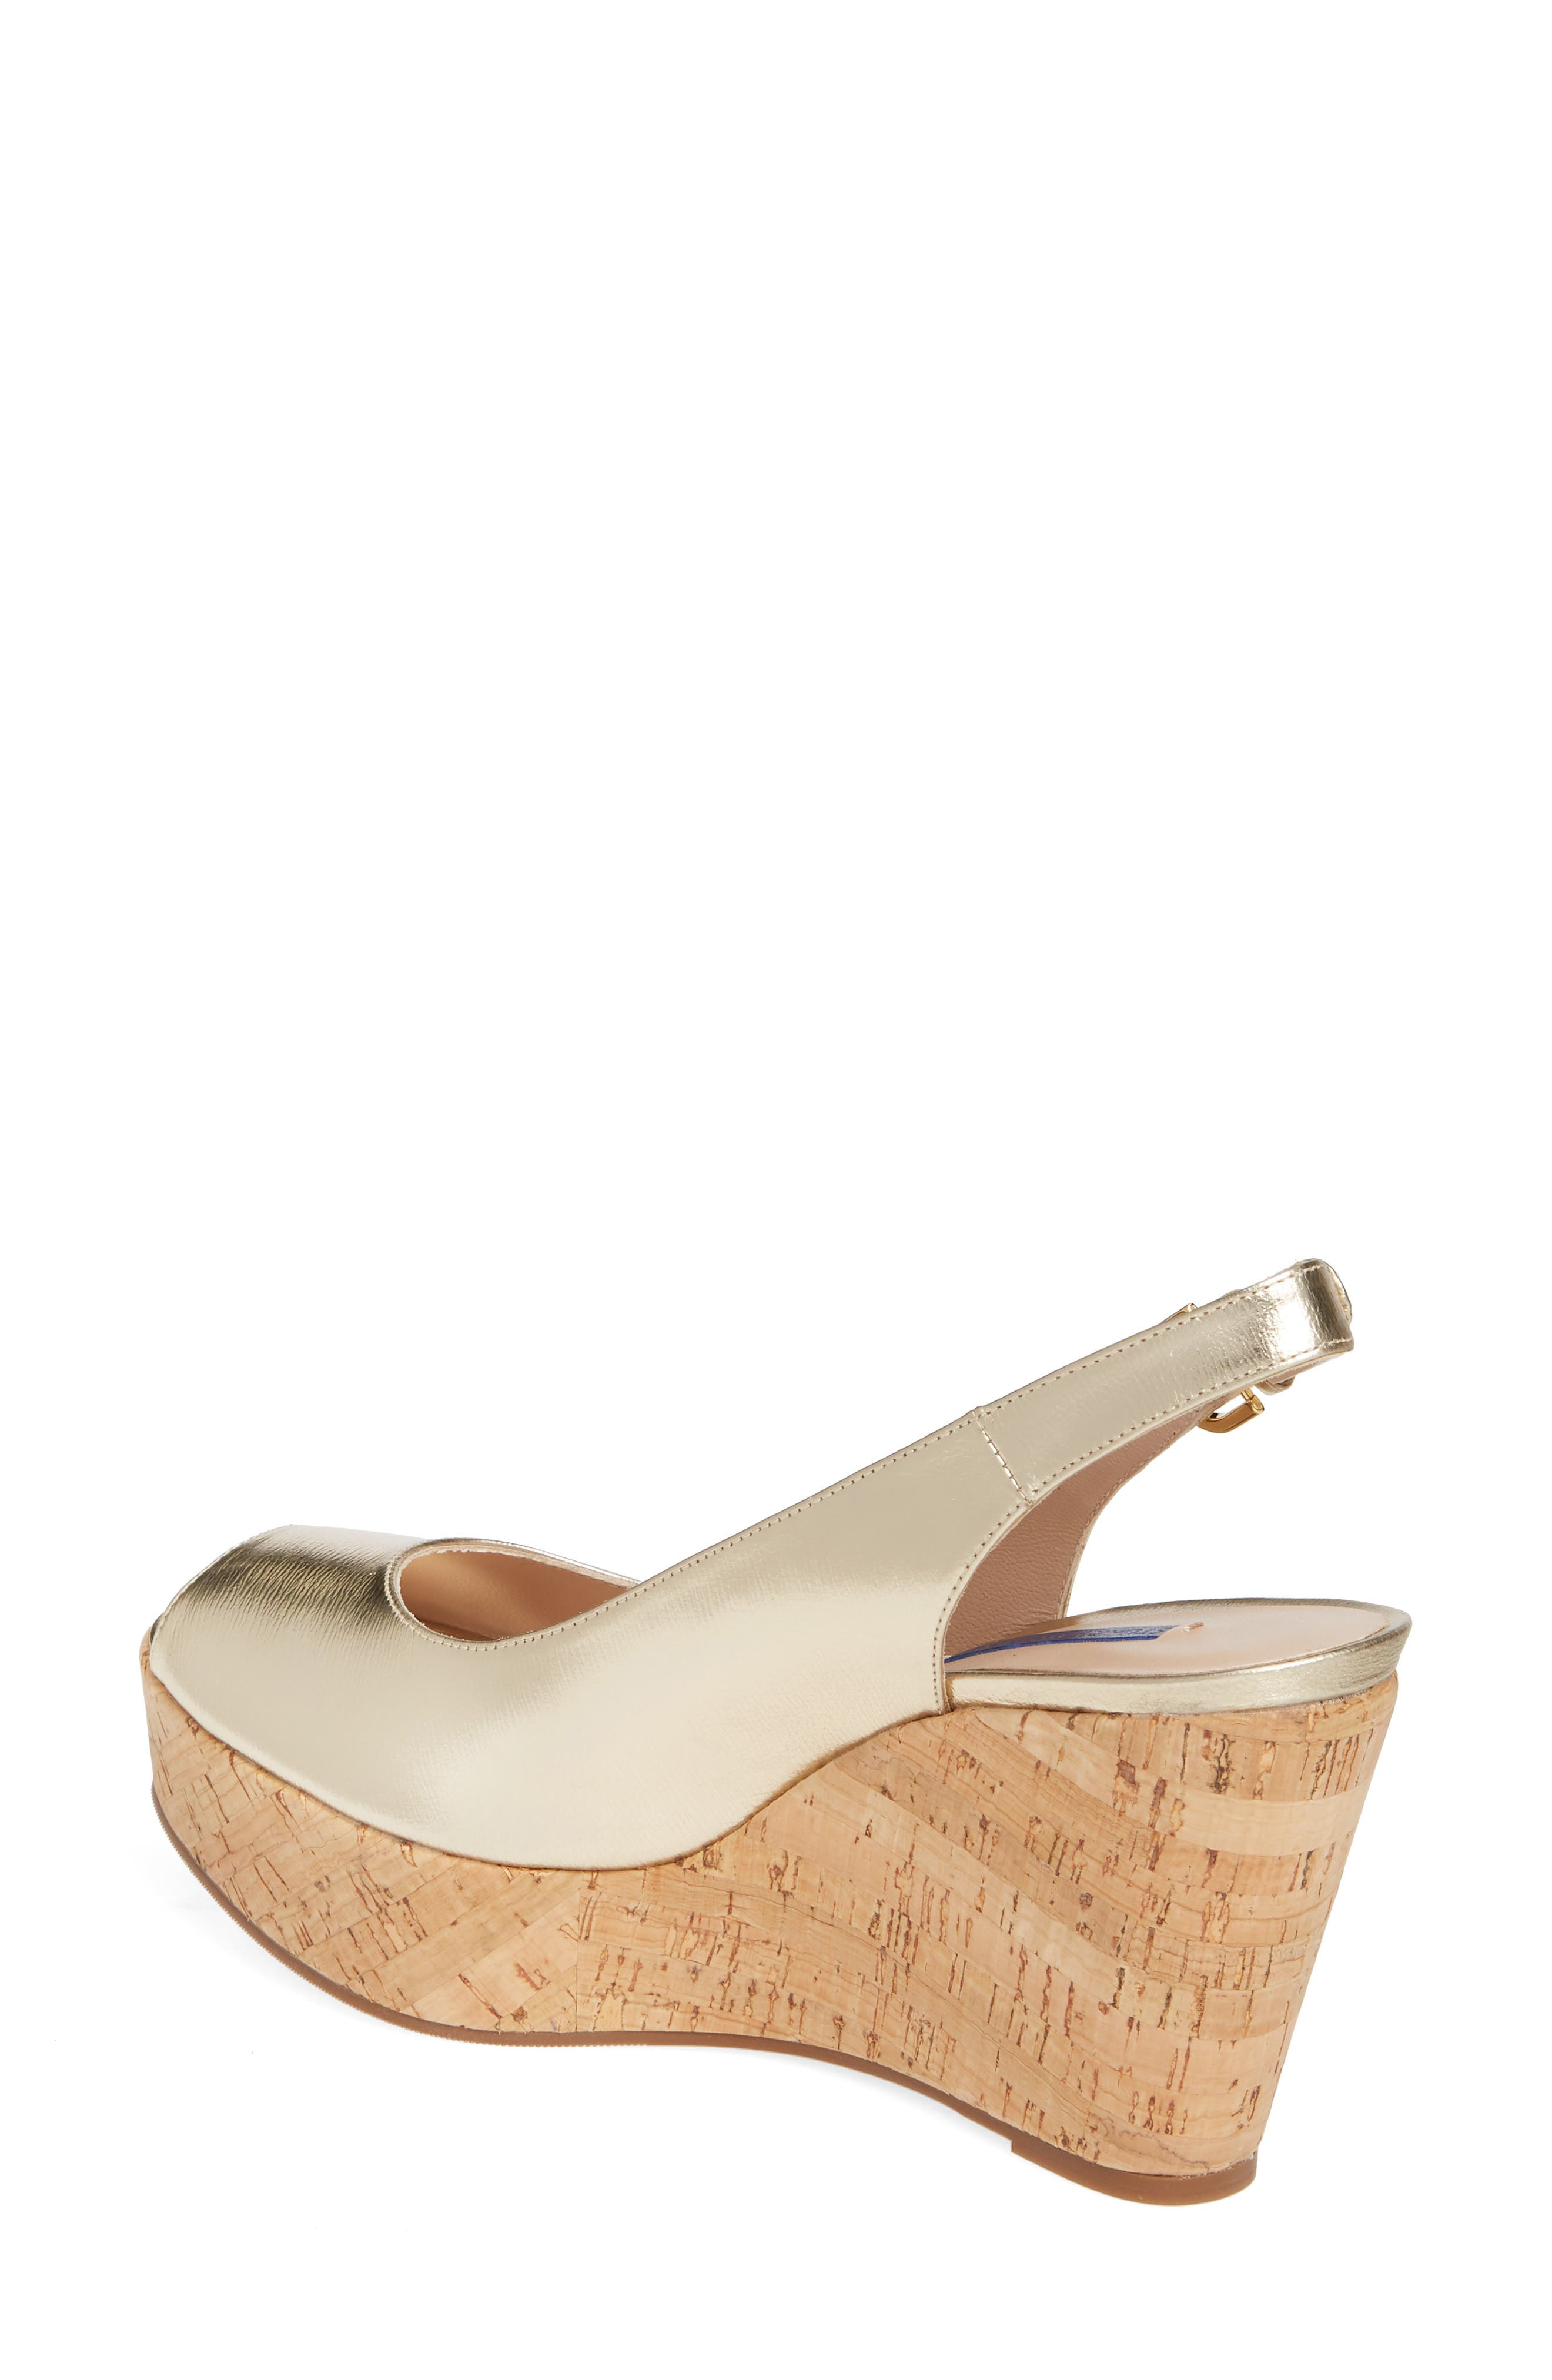 d87050afb73e30 Stuart Weitzman All Women